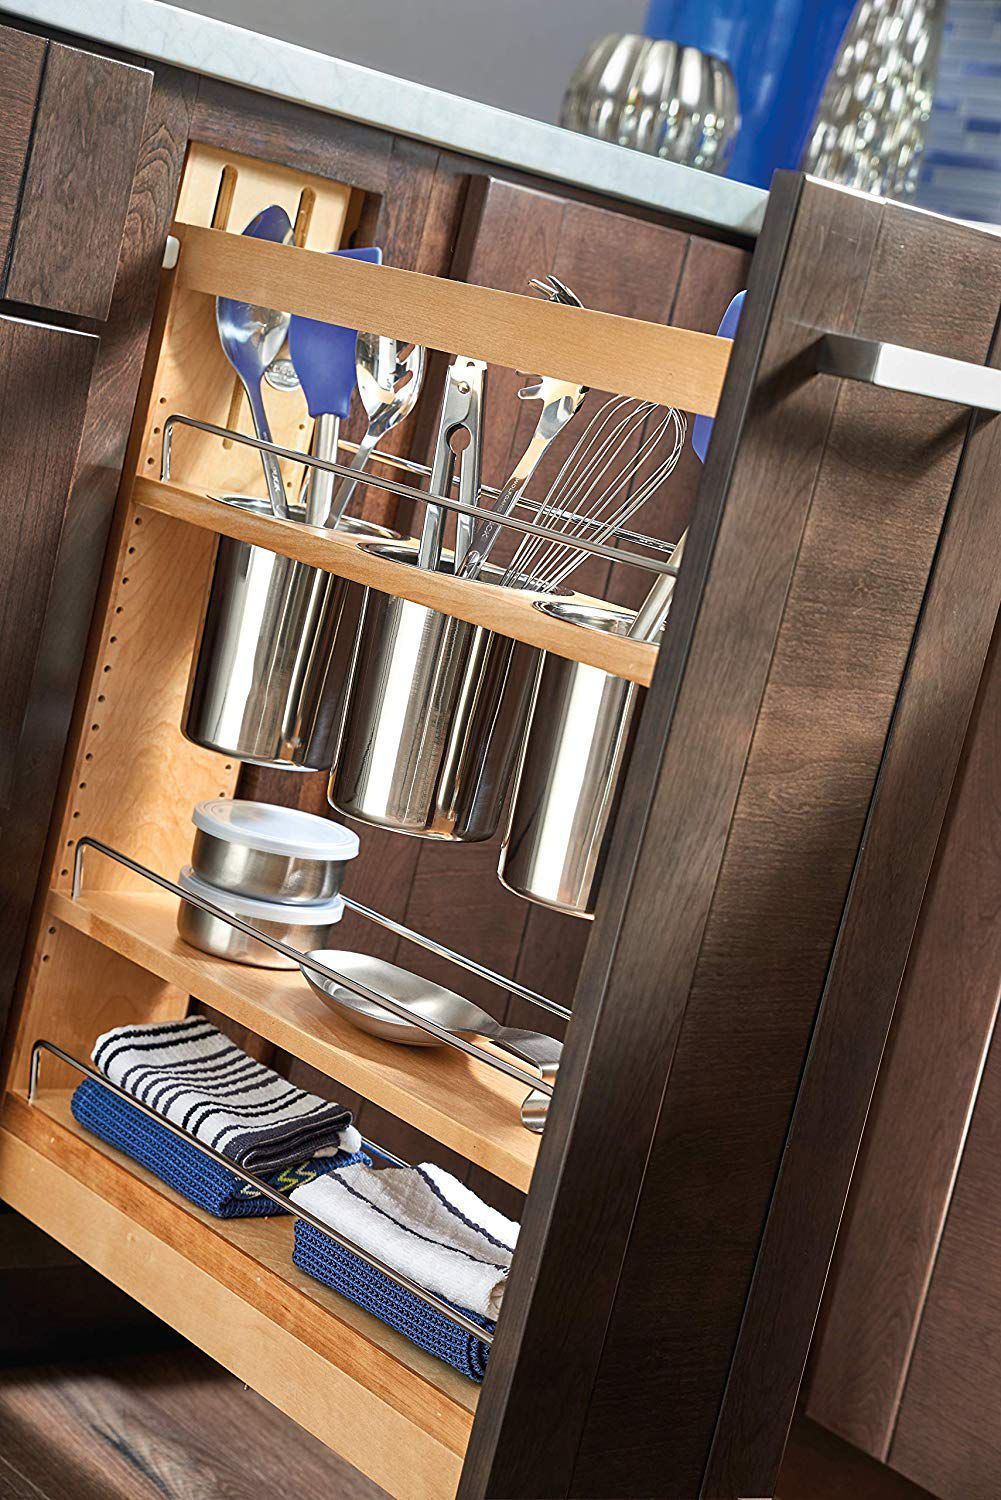 Pull-Out Utensil Drawer Organizer